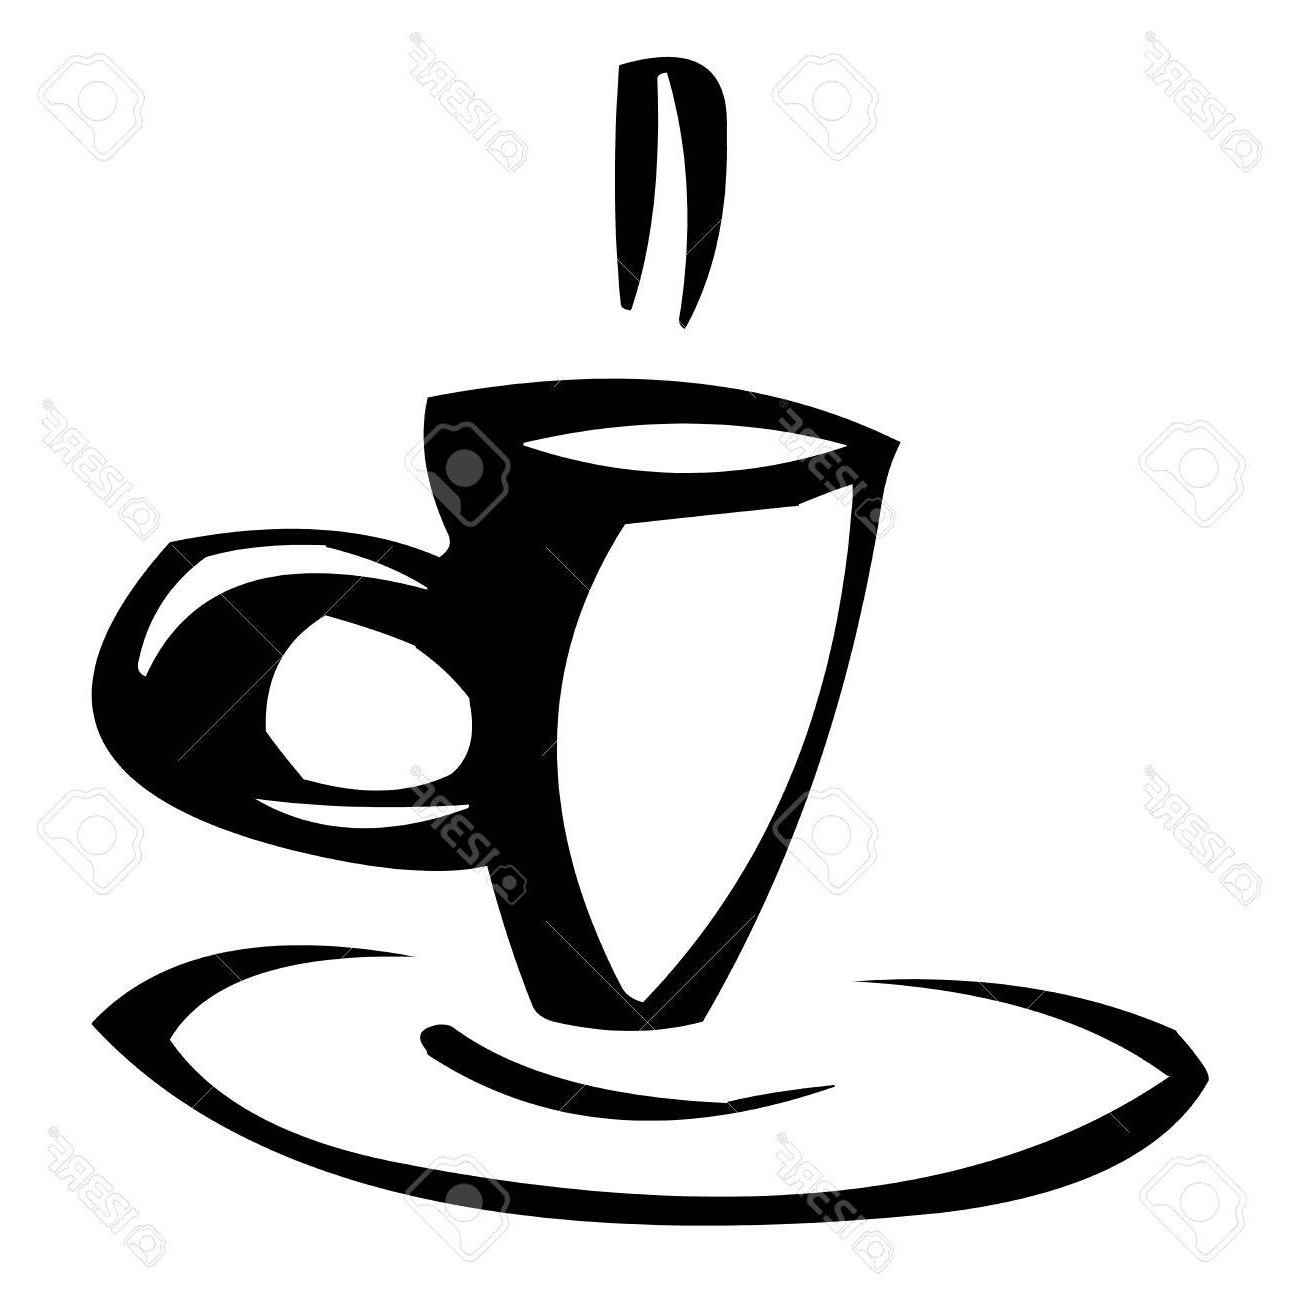 Free coffee clipart graphics picture free download Best Free Coffee Cup Clip Art Vector Pictures » Free Vector Art ... picture free download